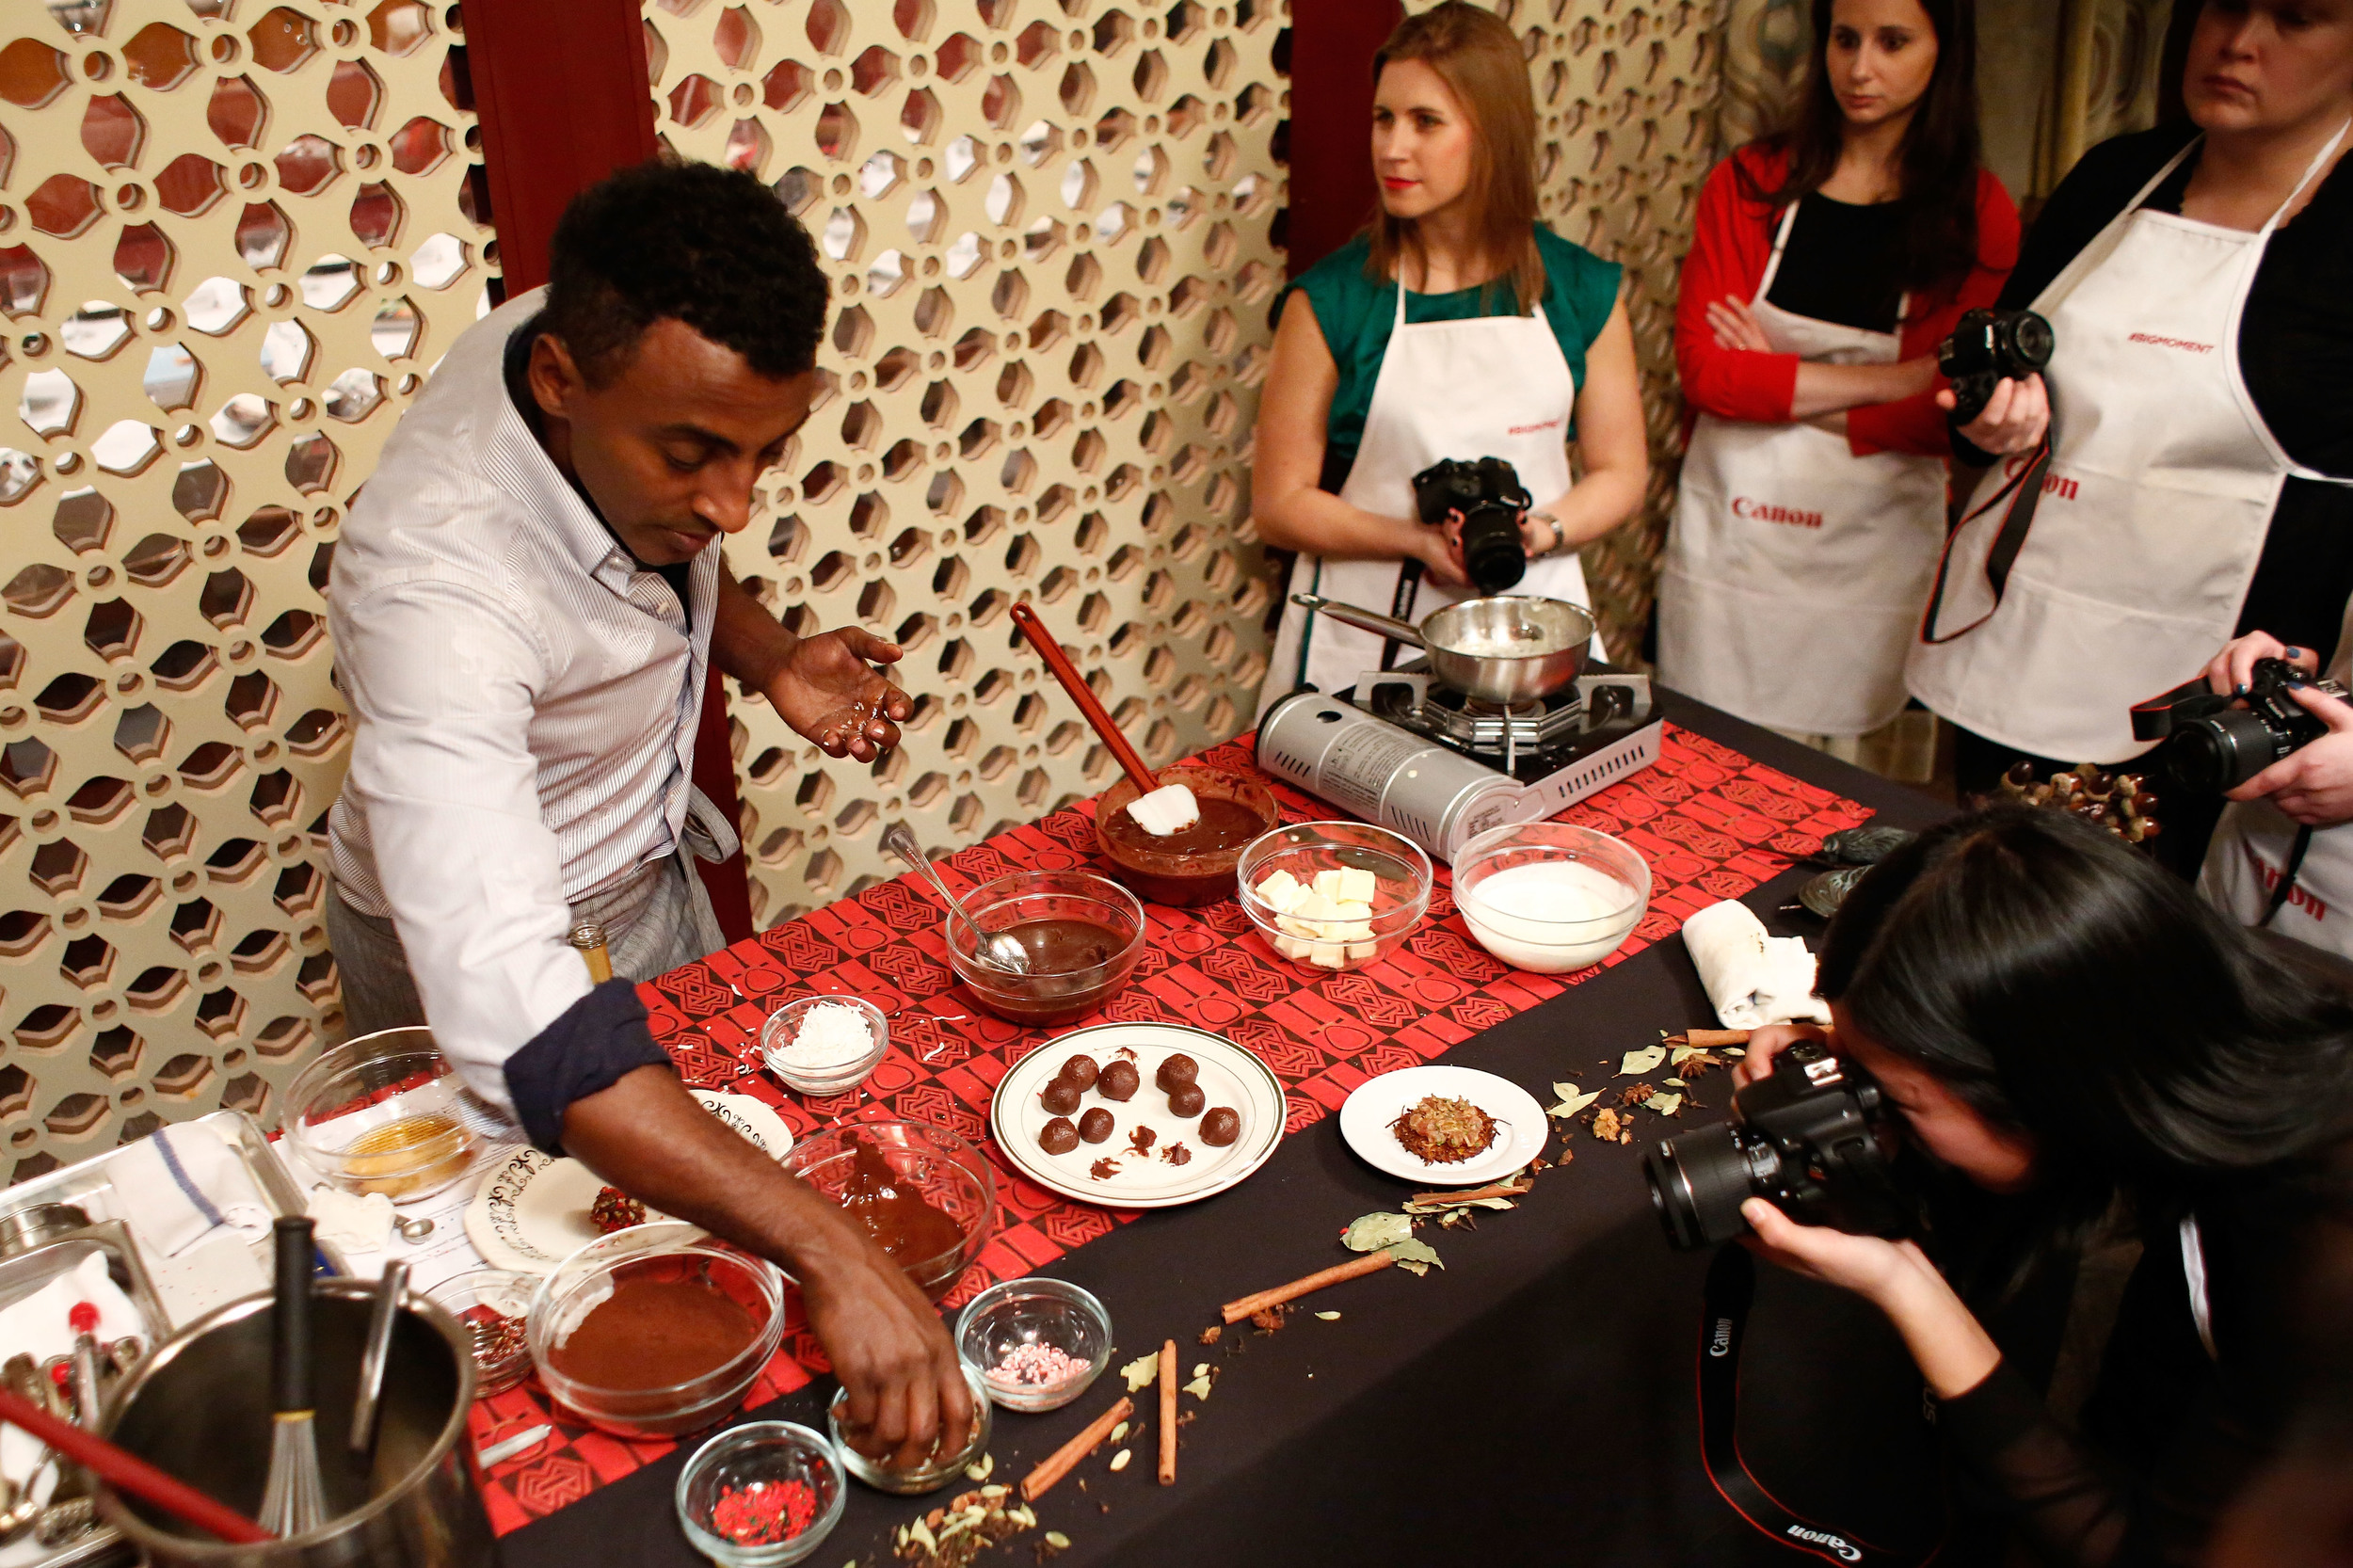 canons-the-big-moment-with-chef-marcus-samuelsson-december-2013-at-red-rooster-in-nyc_15744927688_o.jpg